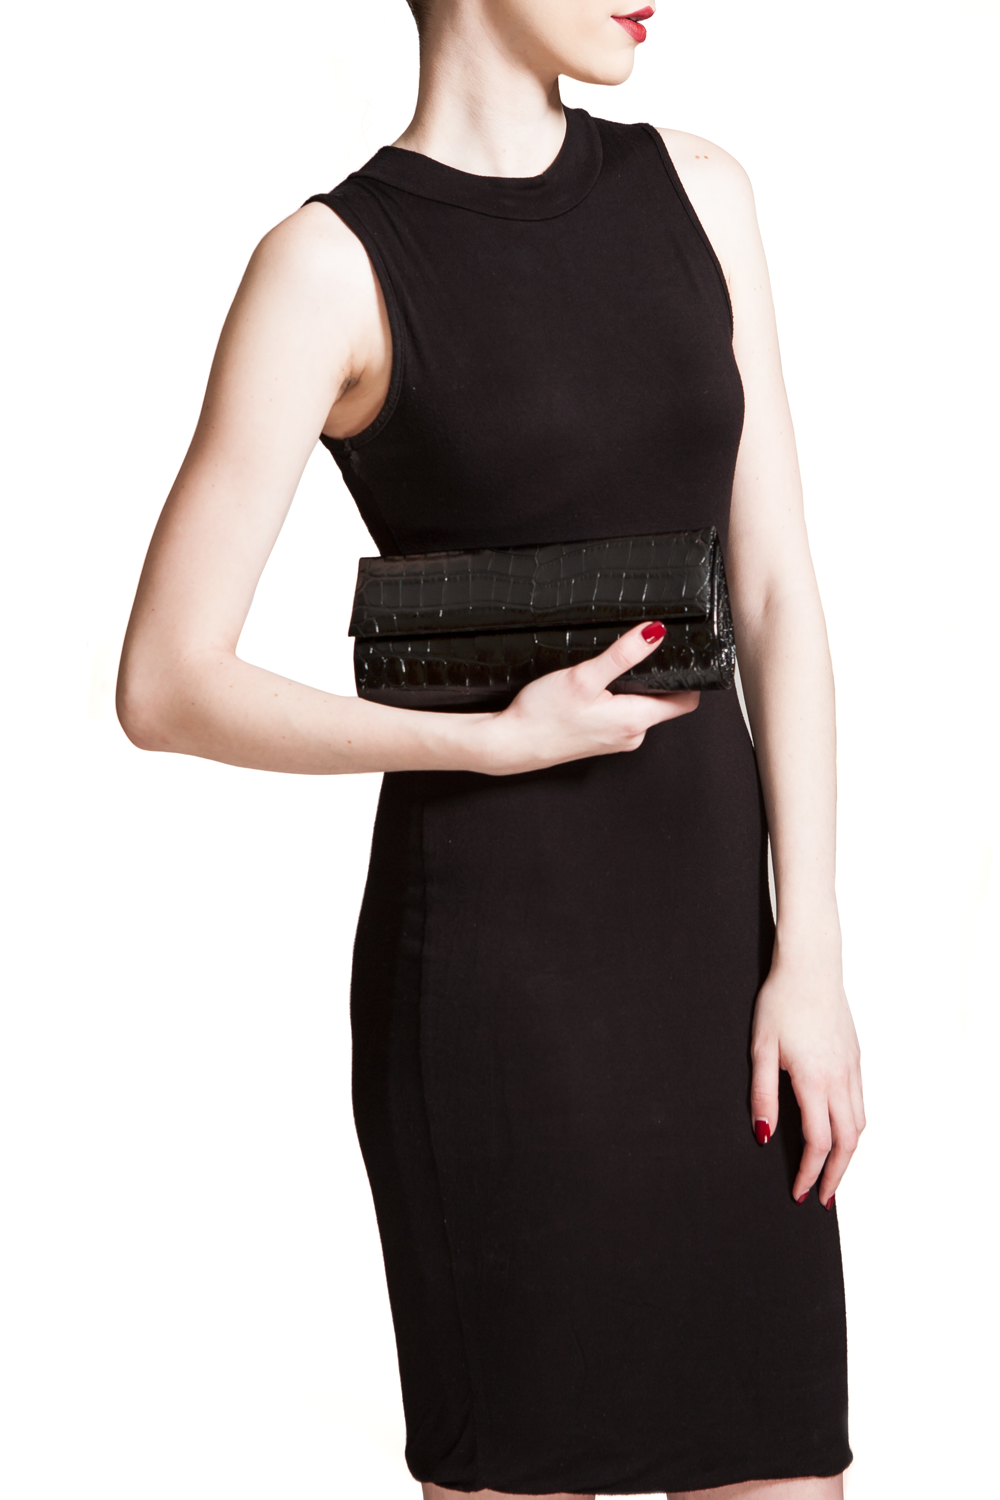 Mel Boteri | 'Audrey' Cocktail Clutch | Black, Croc-Effect Glazed Leather | Model